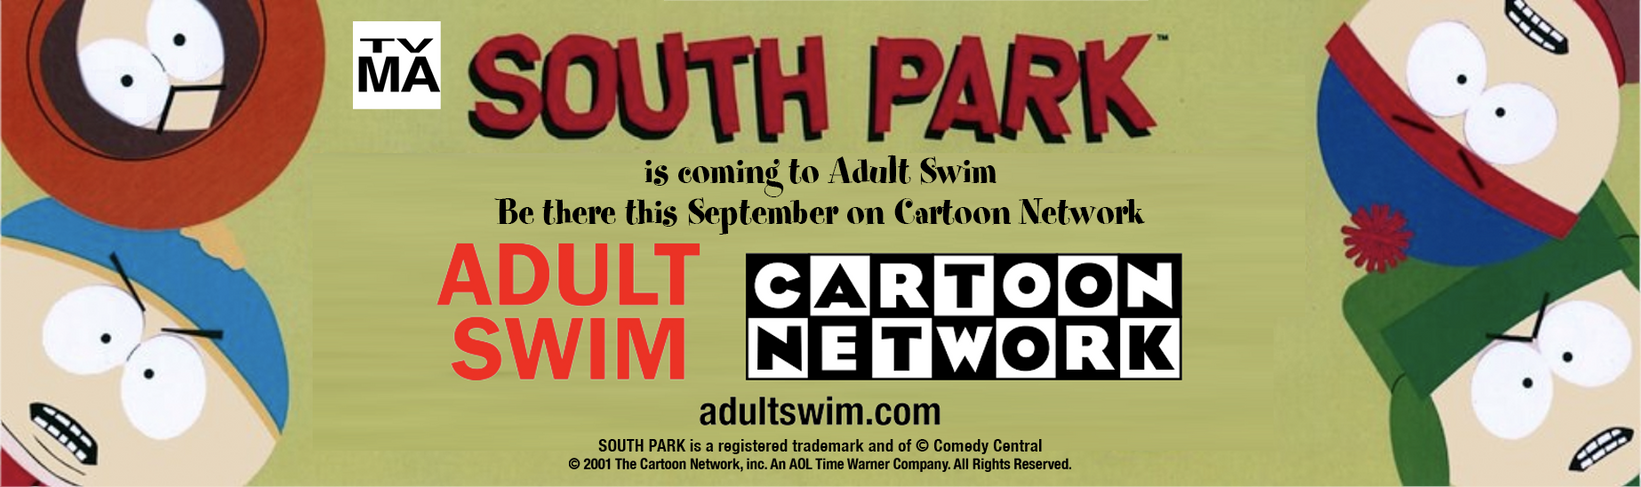 South Park on Adult Swim banner (fanmade)